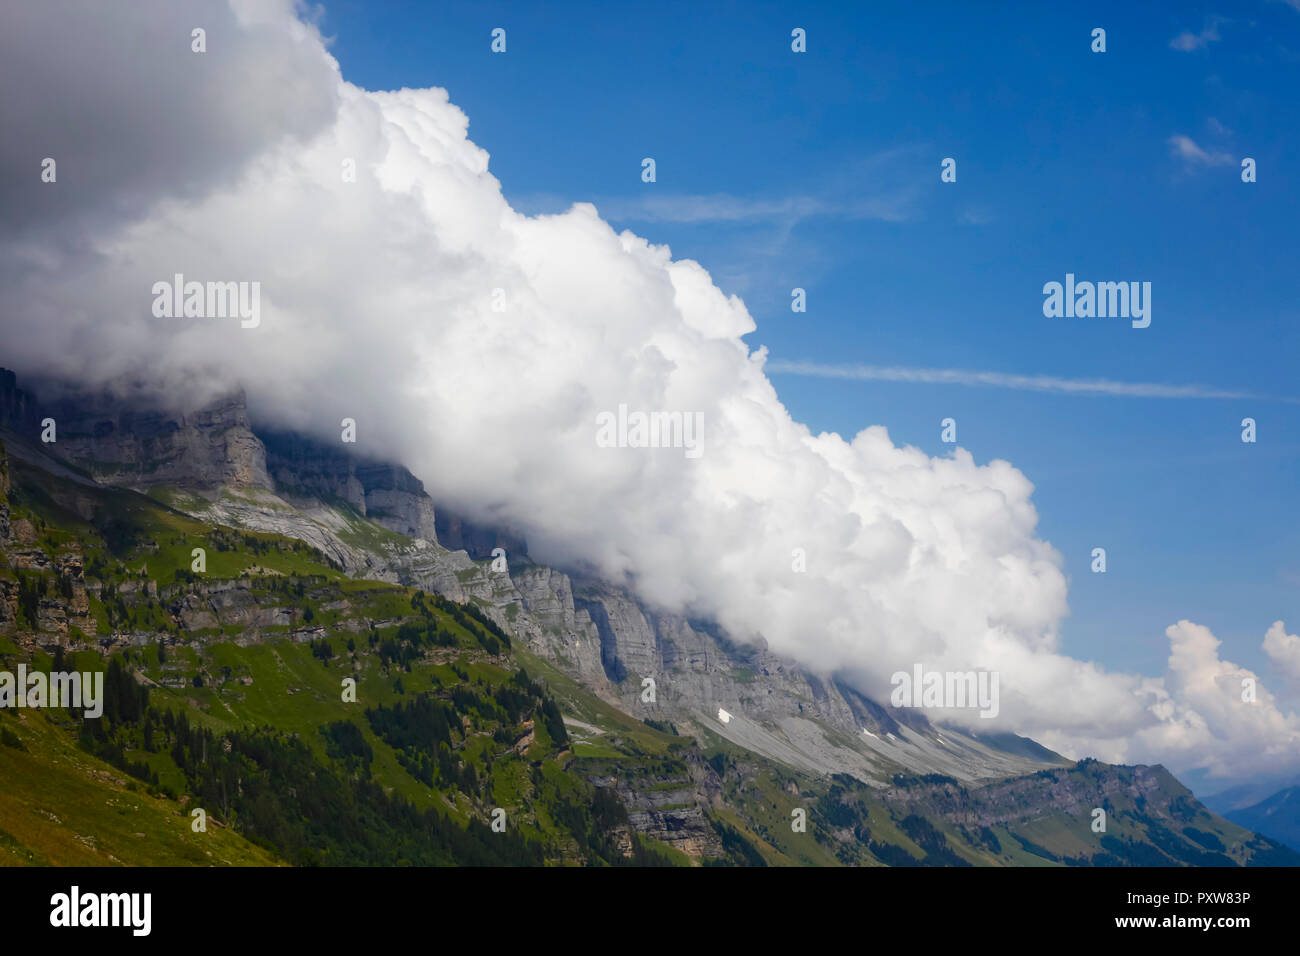 Switzerland, View from Klausen-Pass to mountain and cloud cover - Stock Image